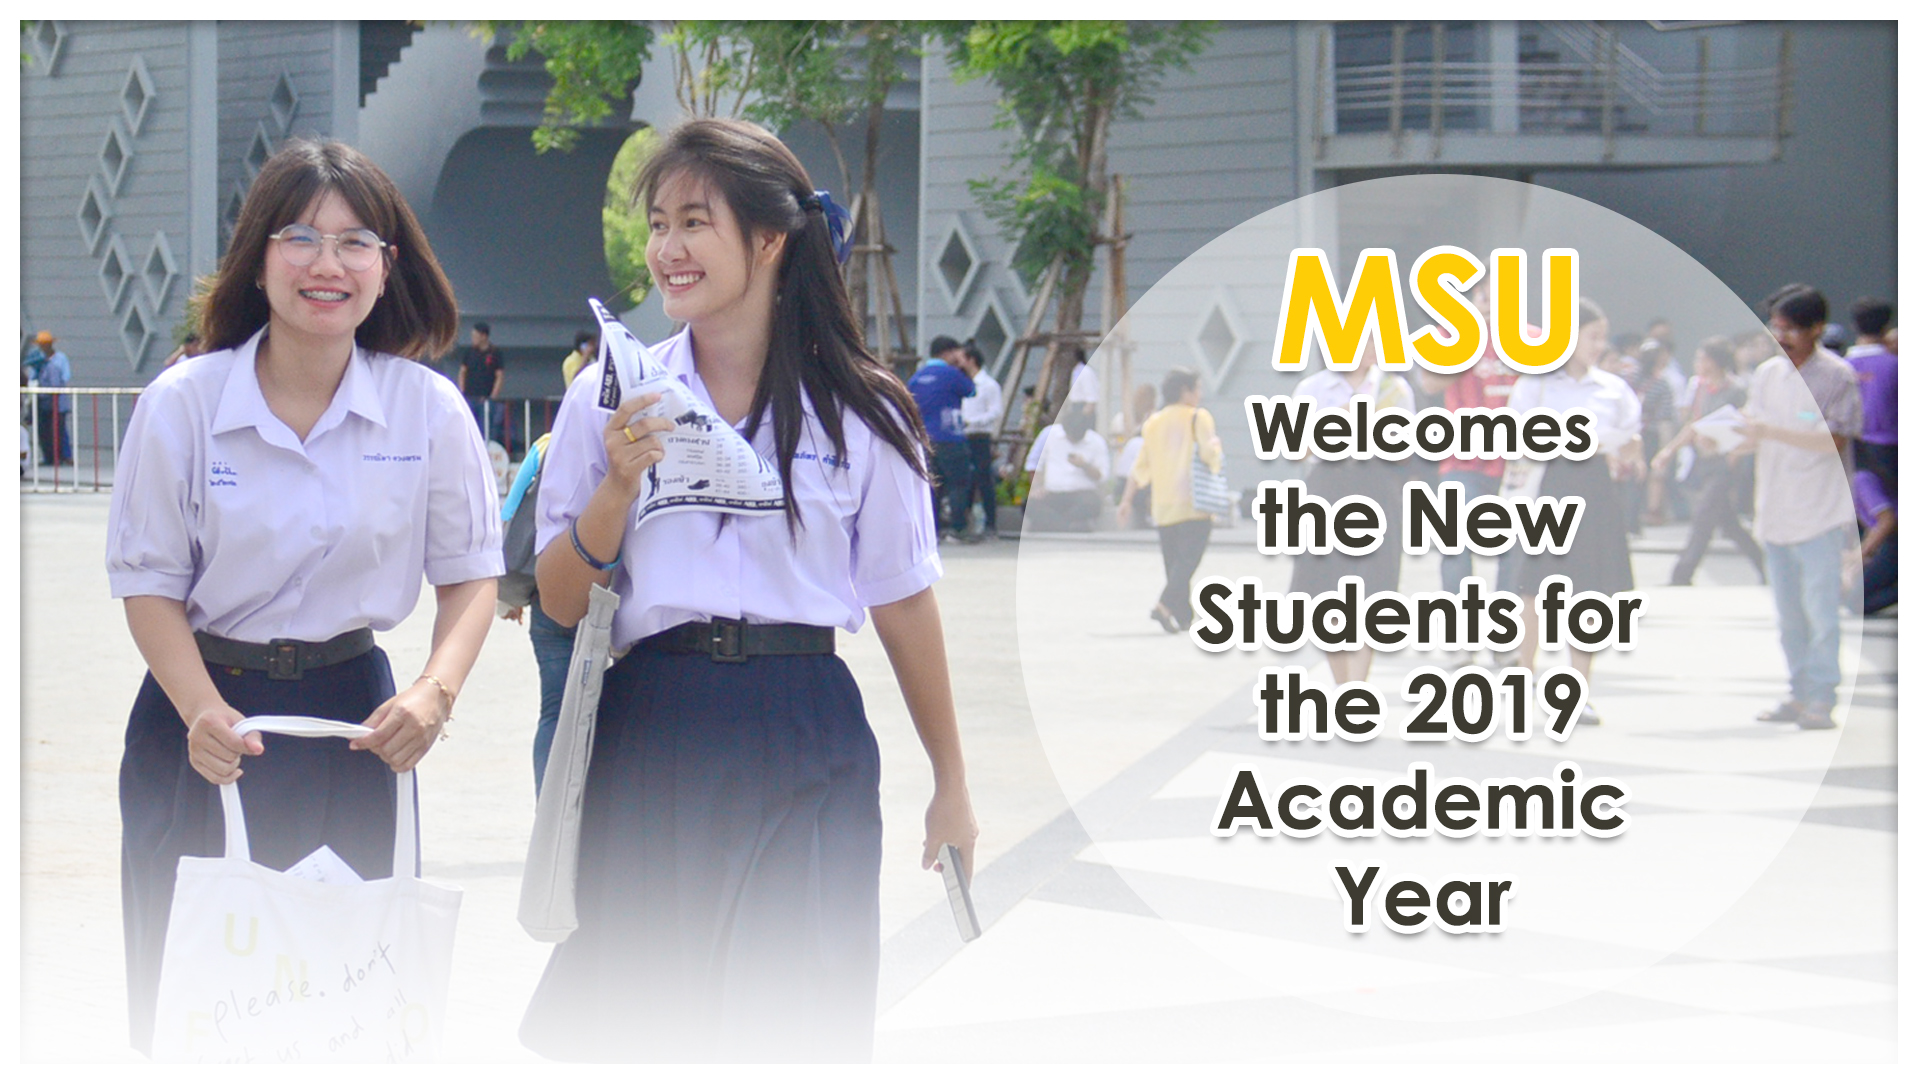 MSU Welcomes the New Students for the 2019 Academic Year.